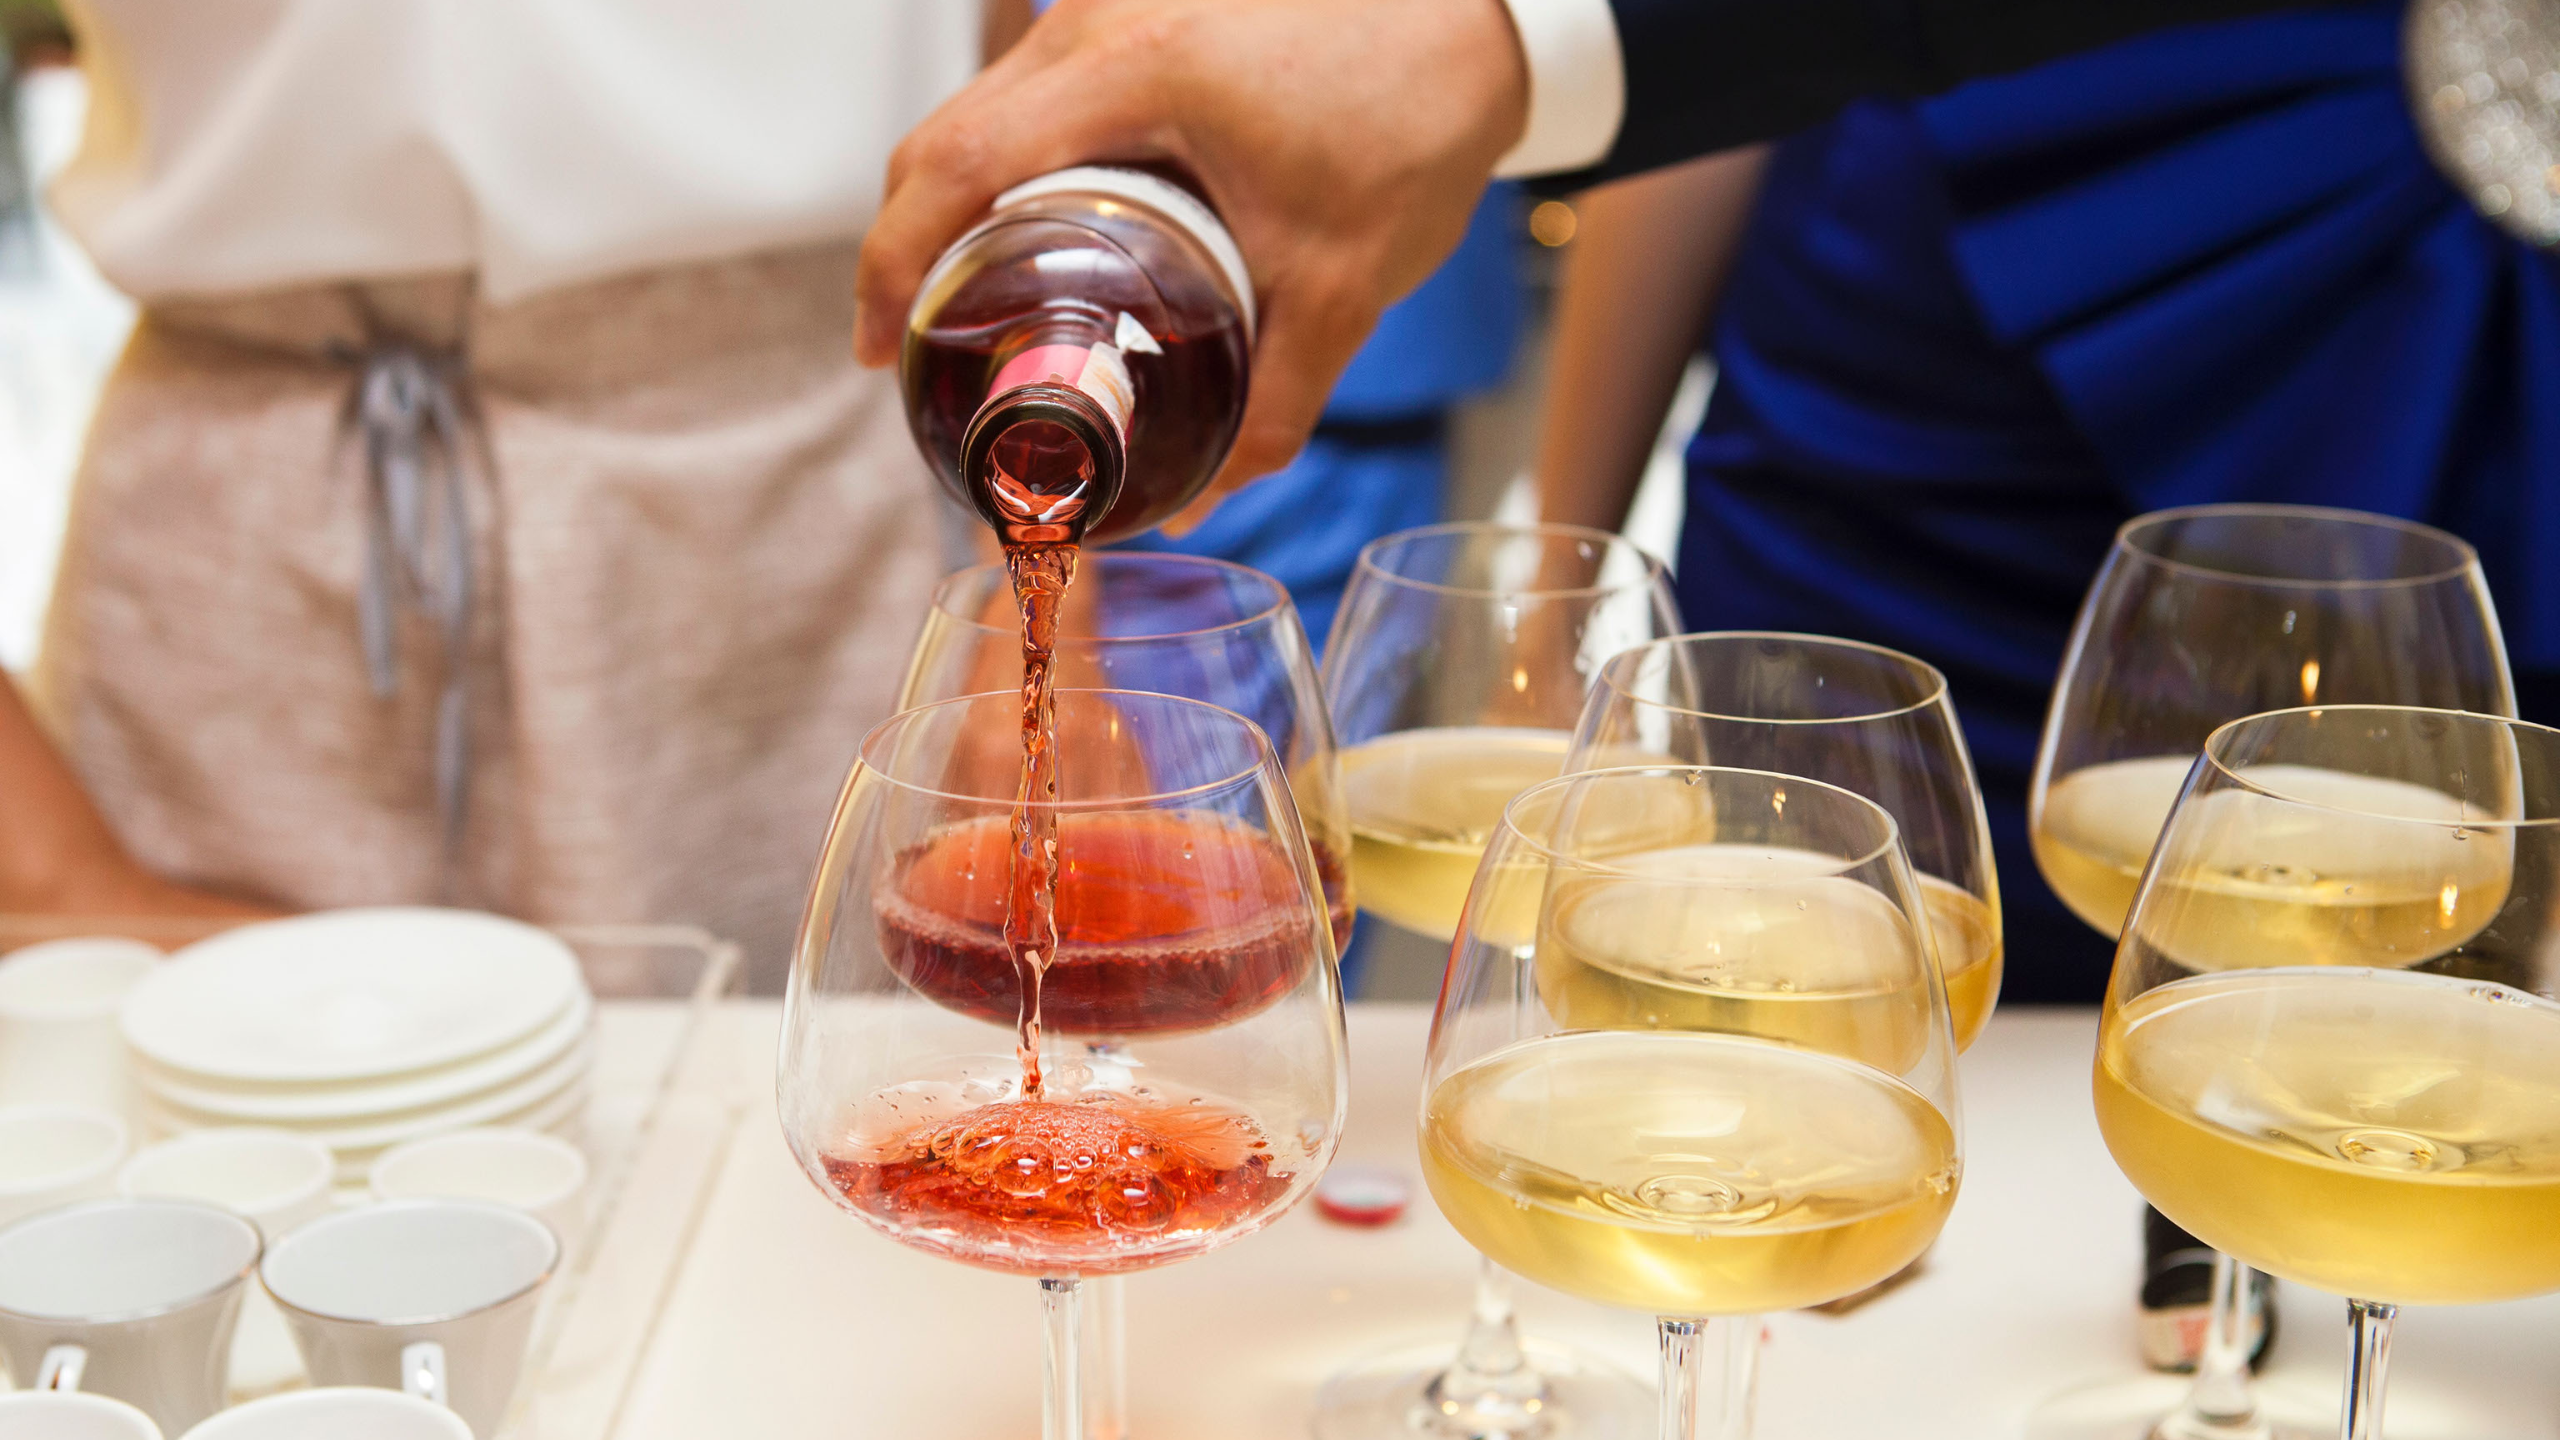 wine being poured into glasses